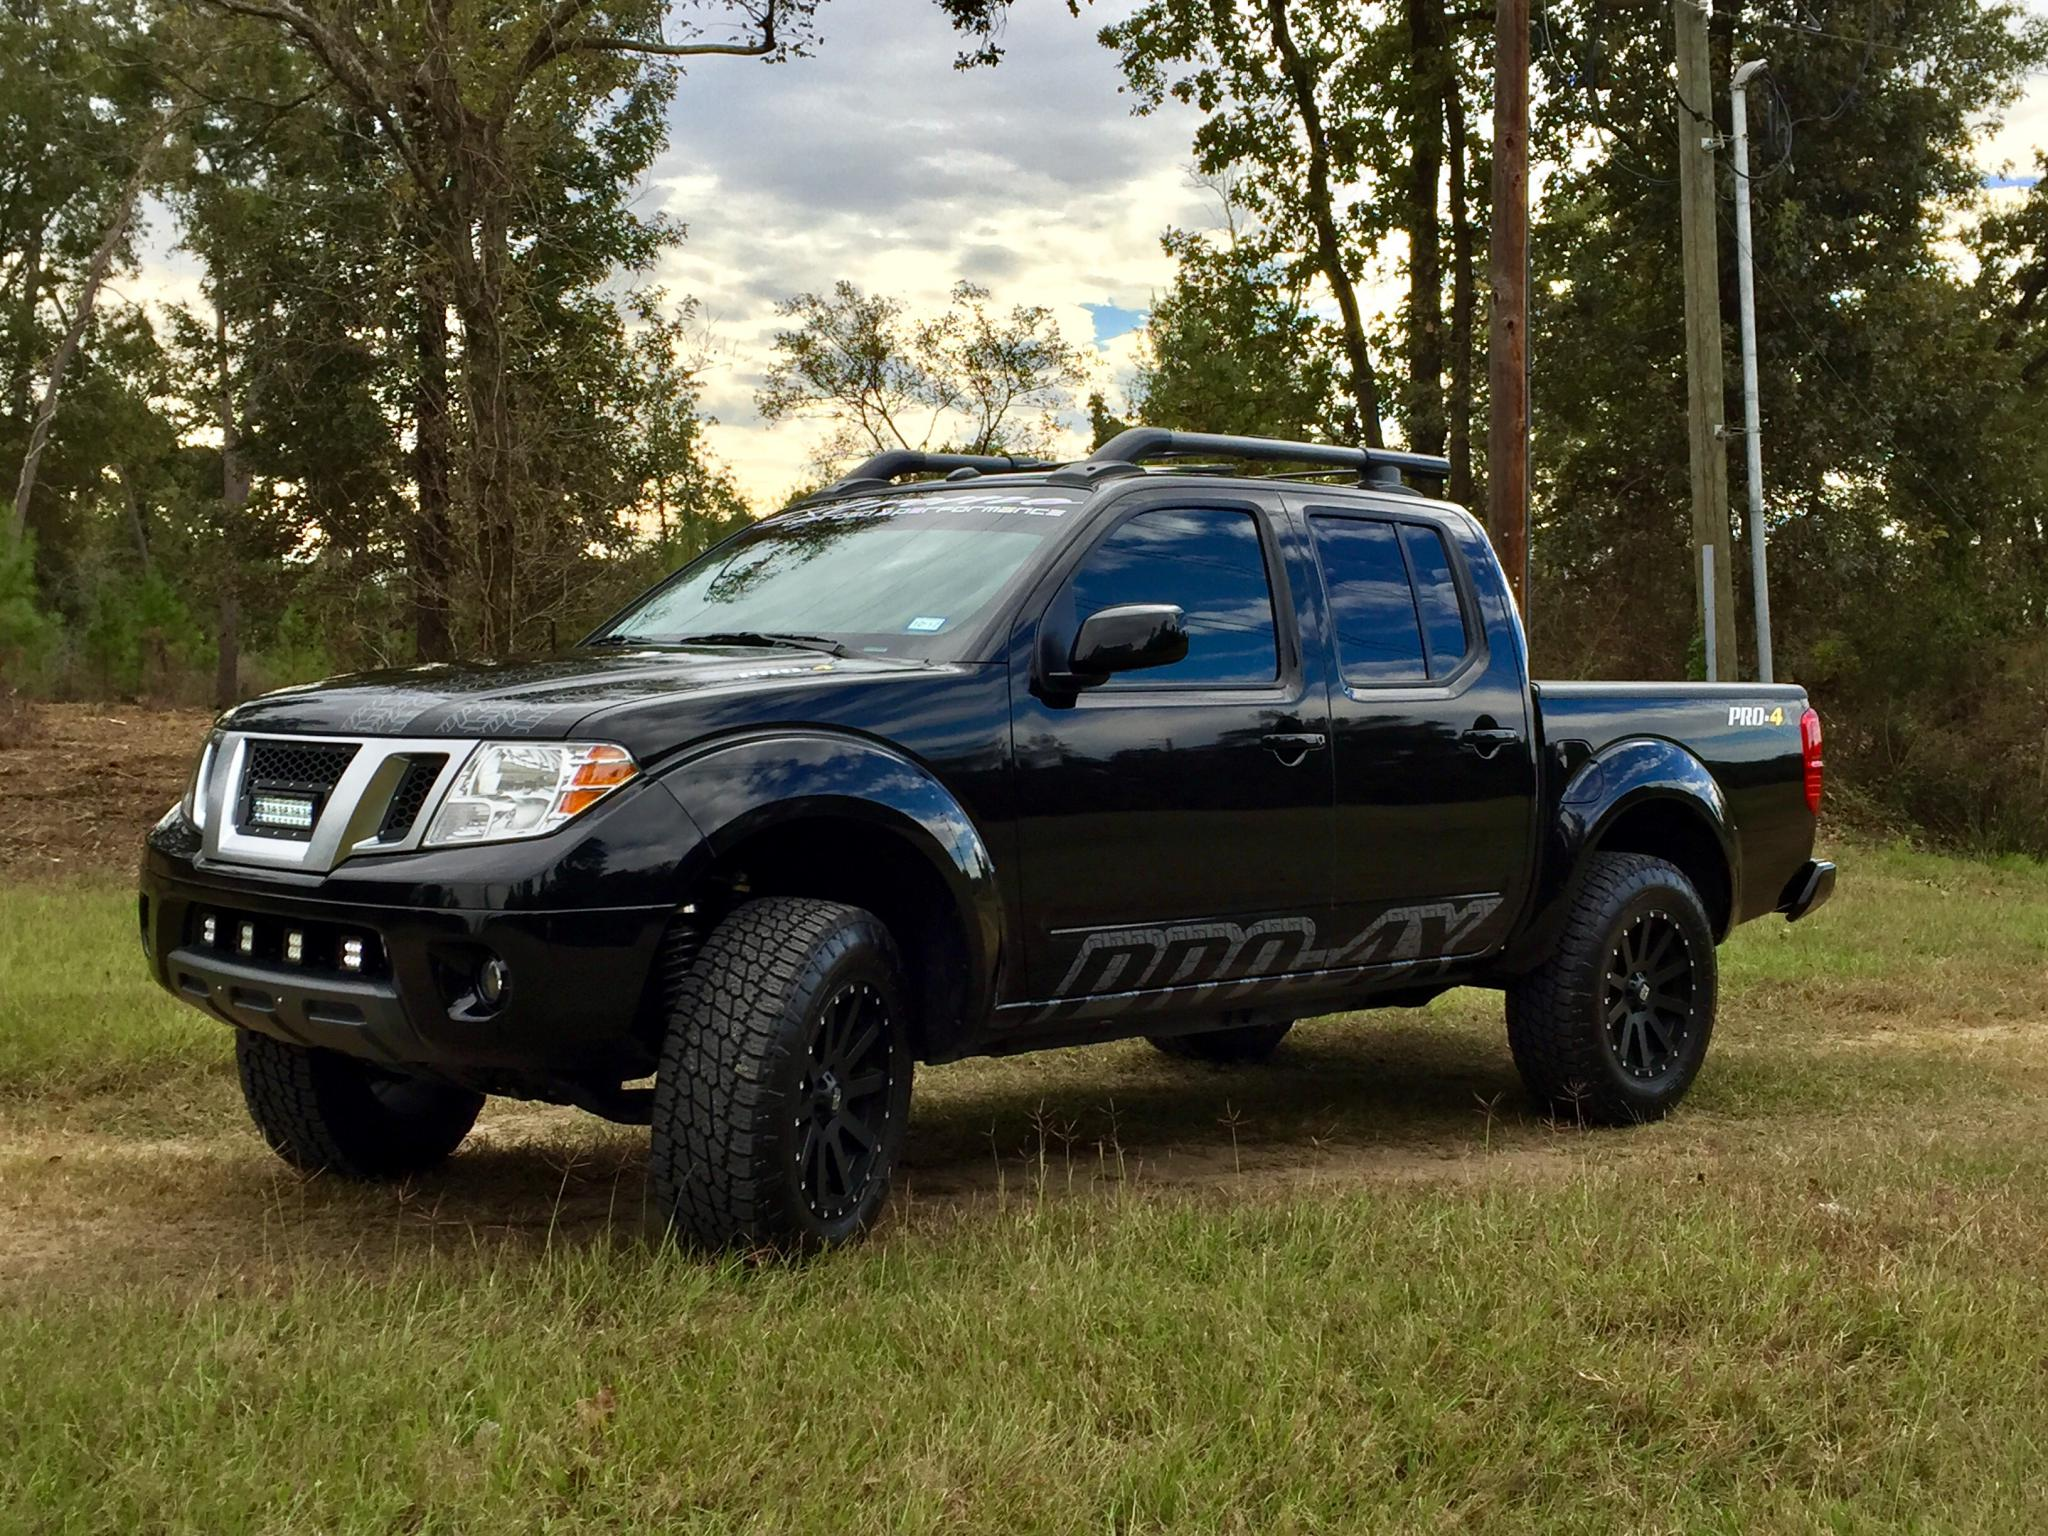 rigid industries replacement grill with light bar mounts nissan frontier forum rigid industries replacement grill with